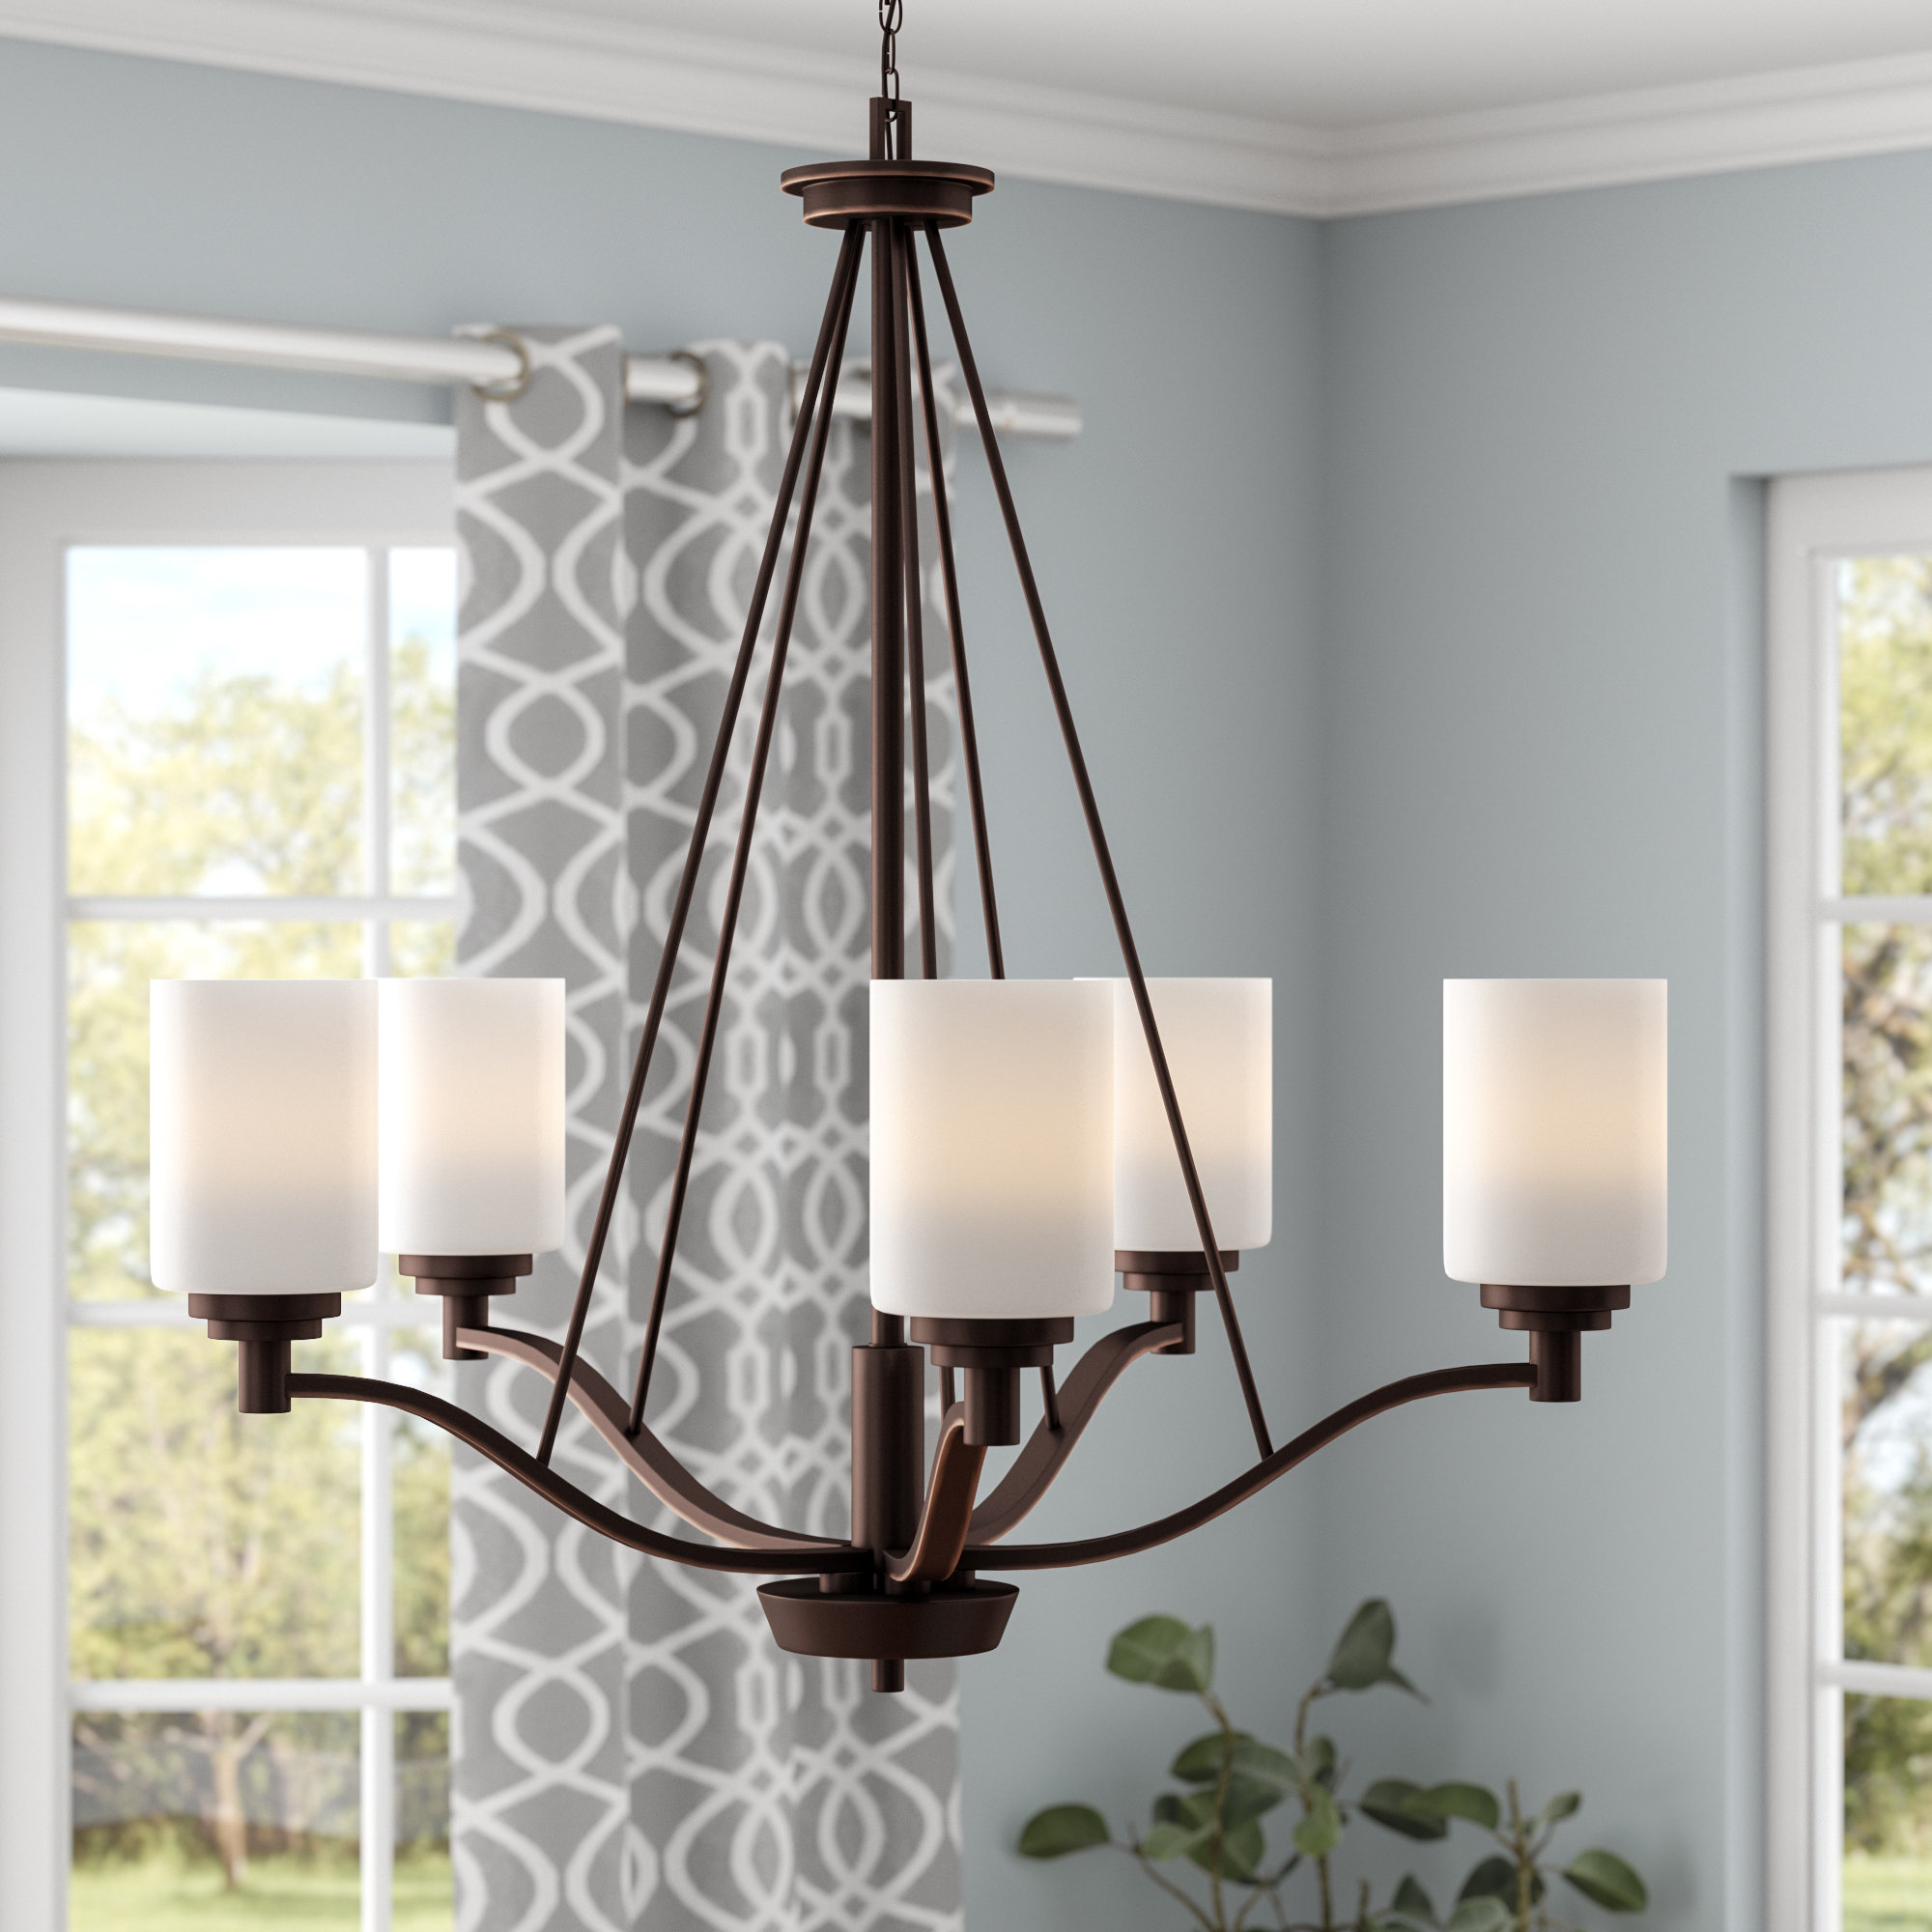 Hester 5 Light Shaded Chandelier Throughout Favorite Newent 5 Light Shaded Chandeliers (Gallery 14 of 25)